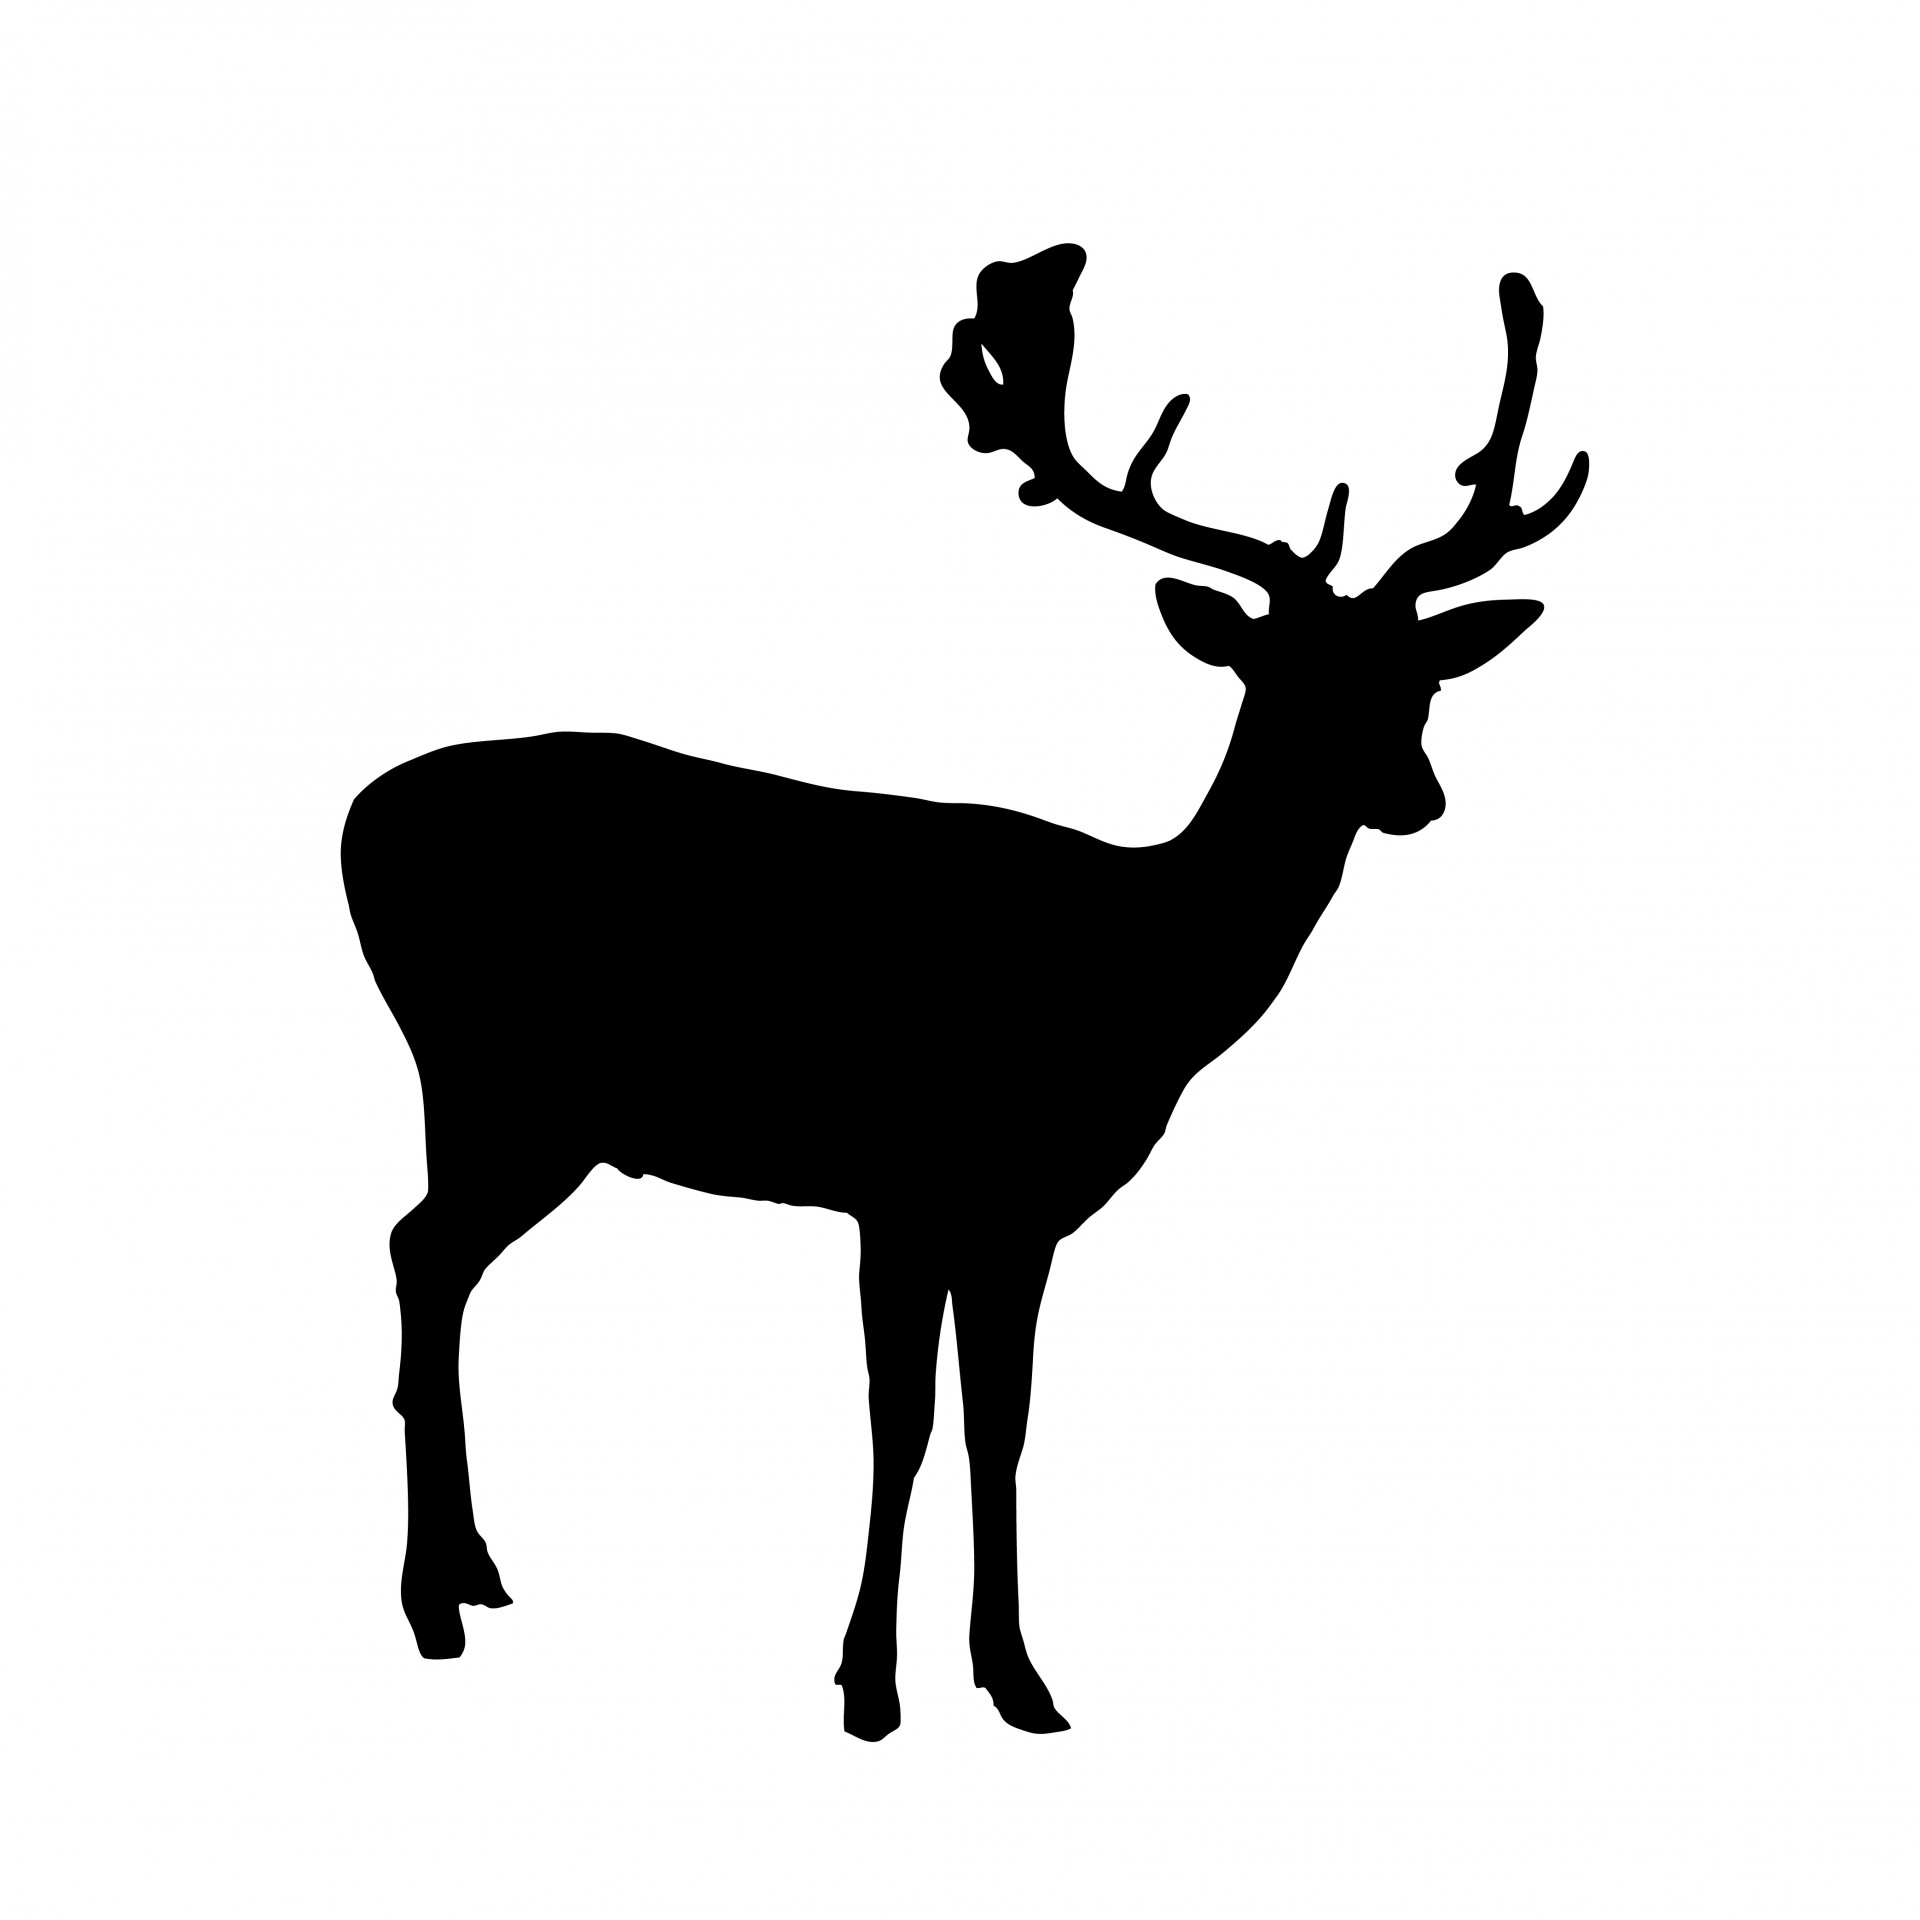 1920x1920 Deer Silhouette Clipart Free Stock Photo